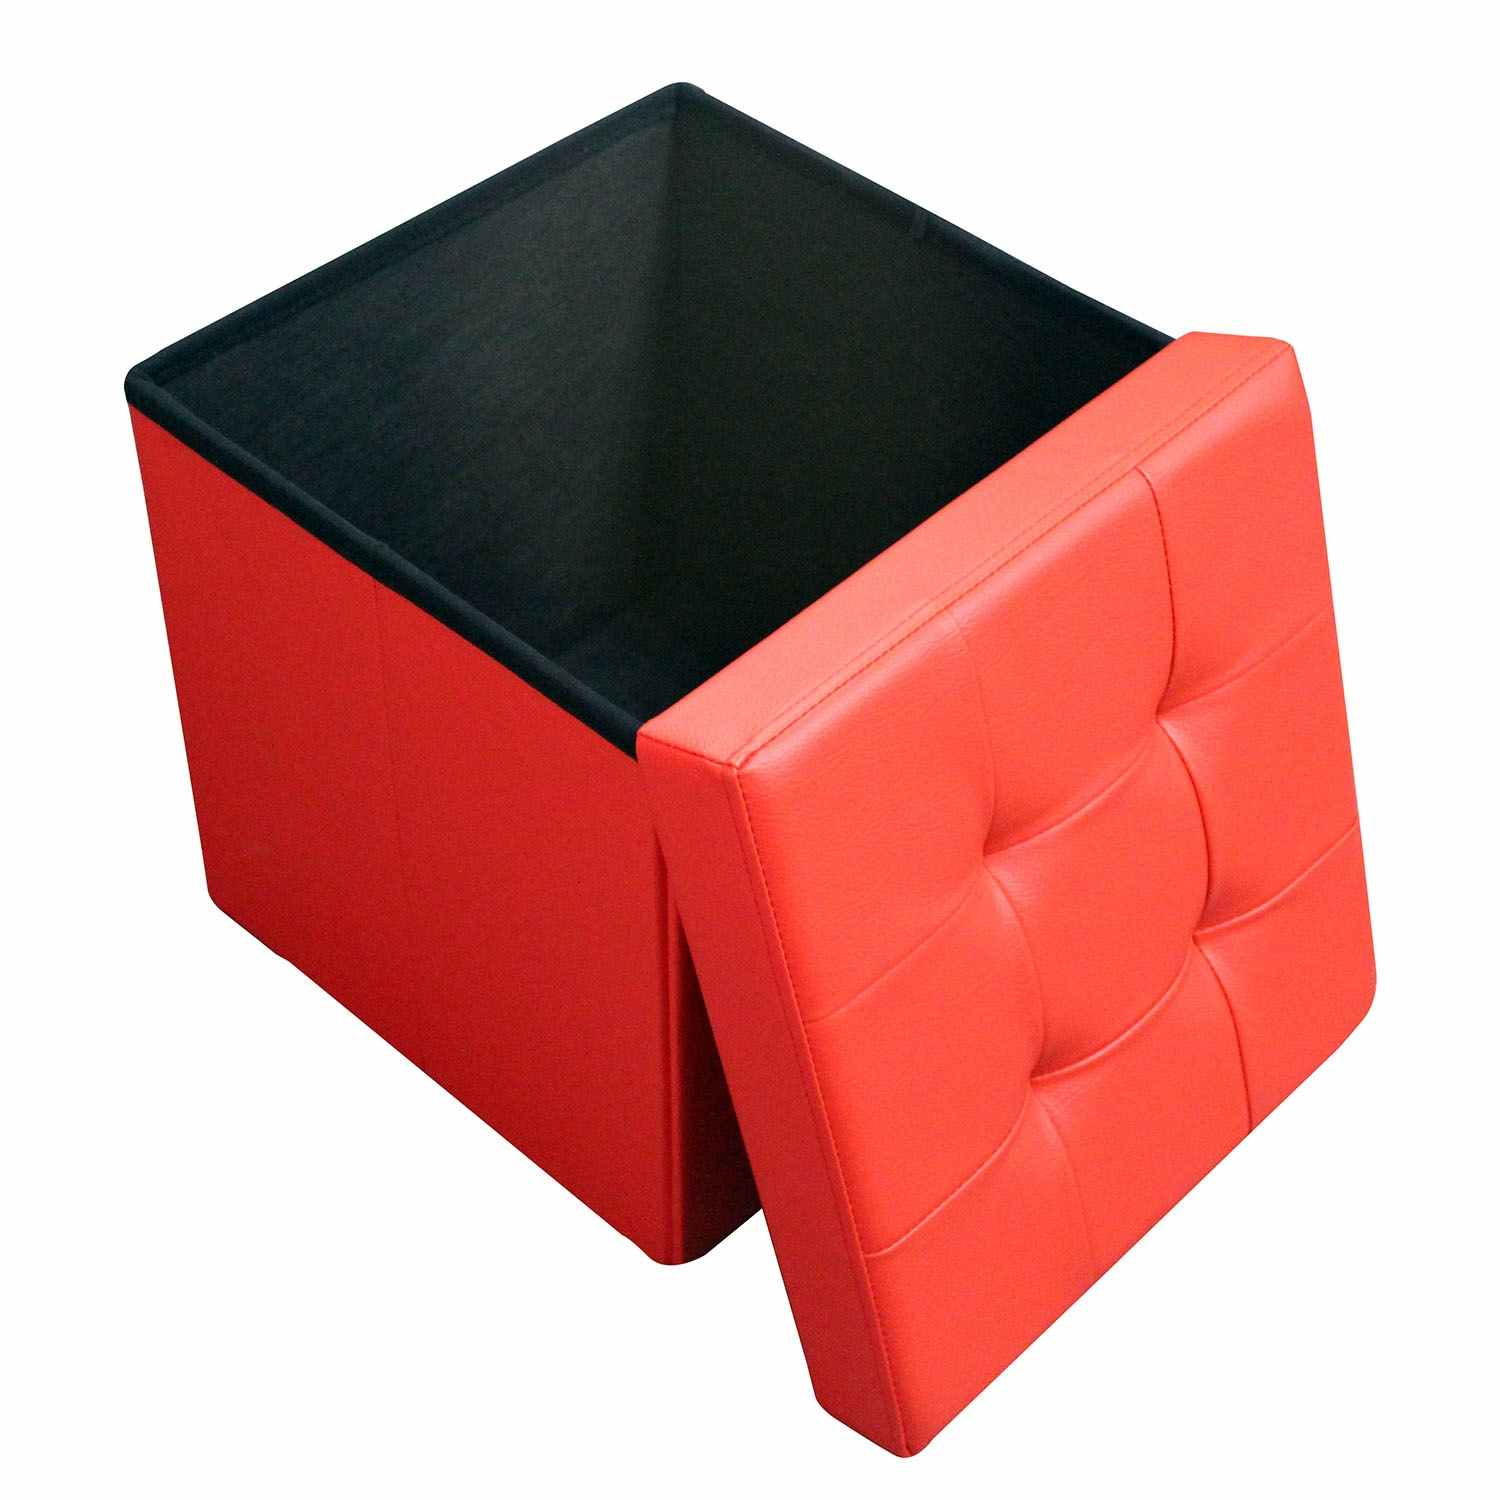 deco in paris 9 pouf coffre carre pliable rouge pouf